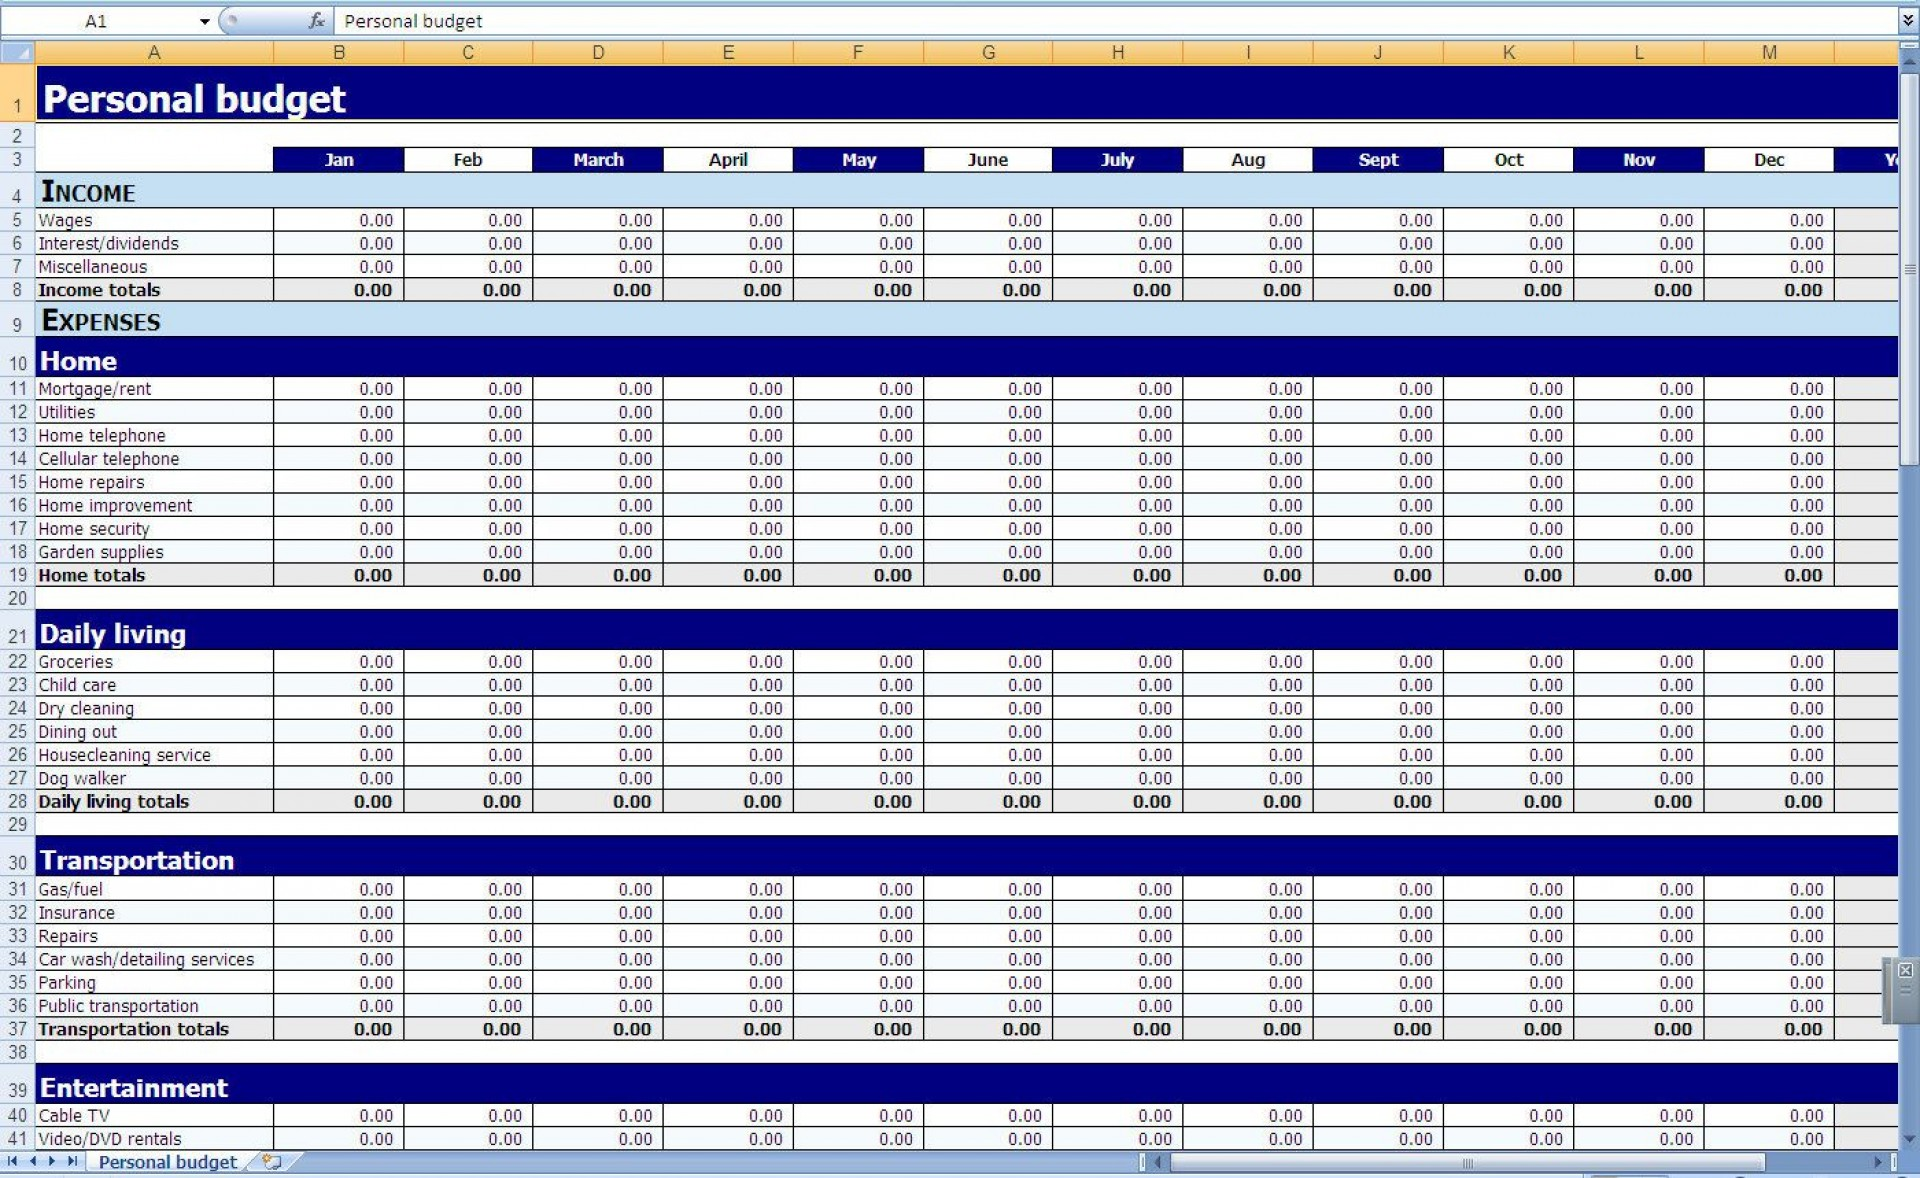 009 Impressive Personal Expense Spreadsheet Template Photo  Monthly Budget Sheet Finance Uk Excel1920